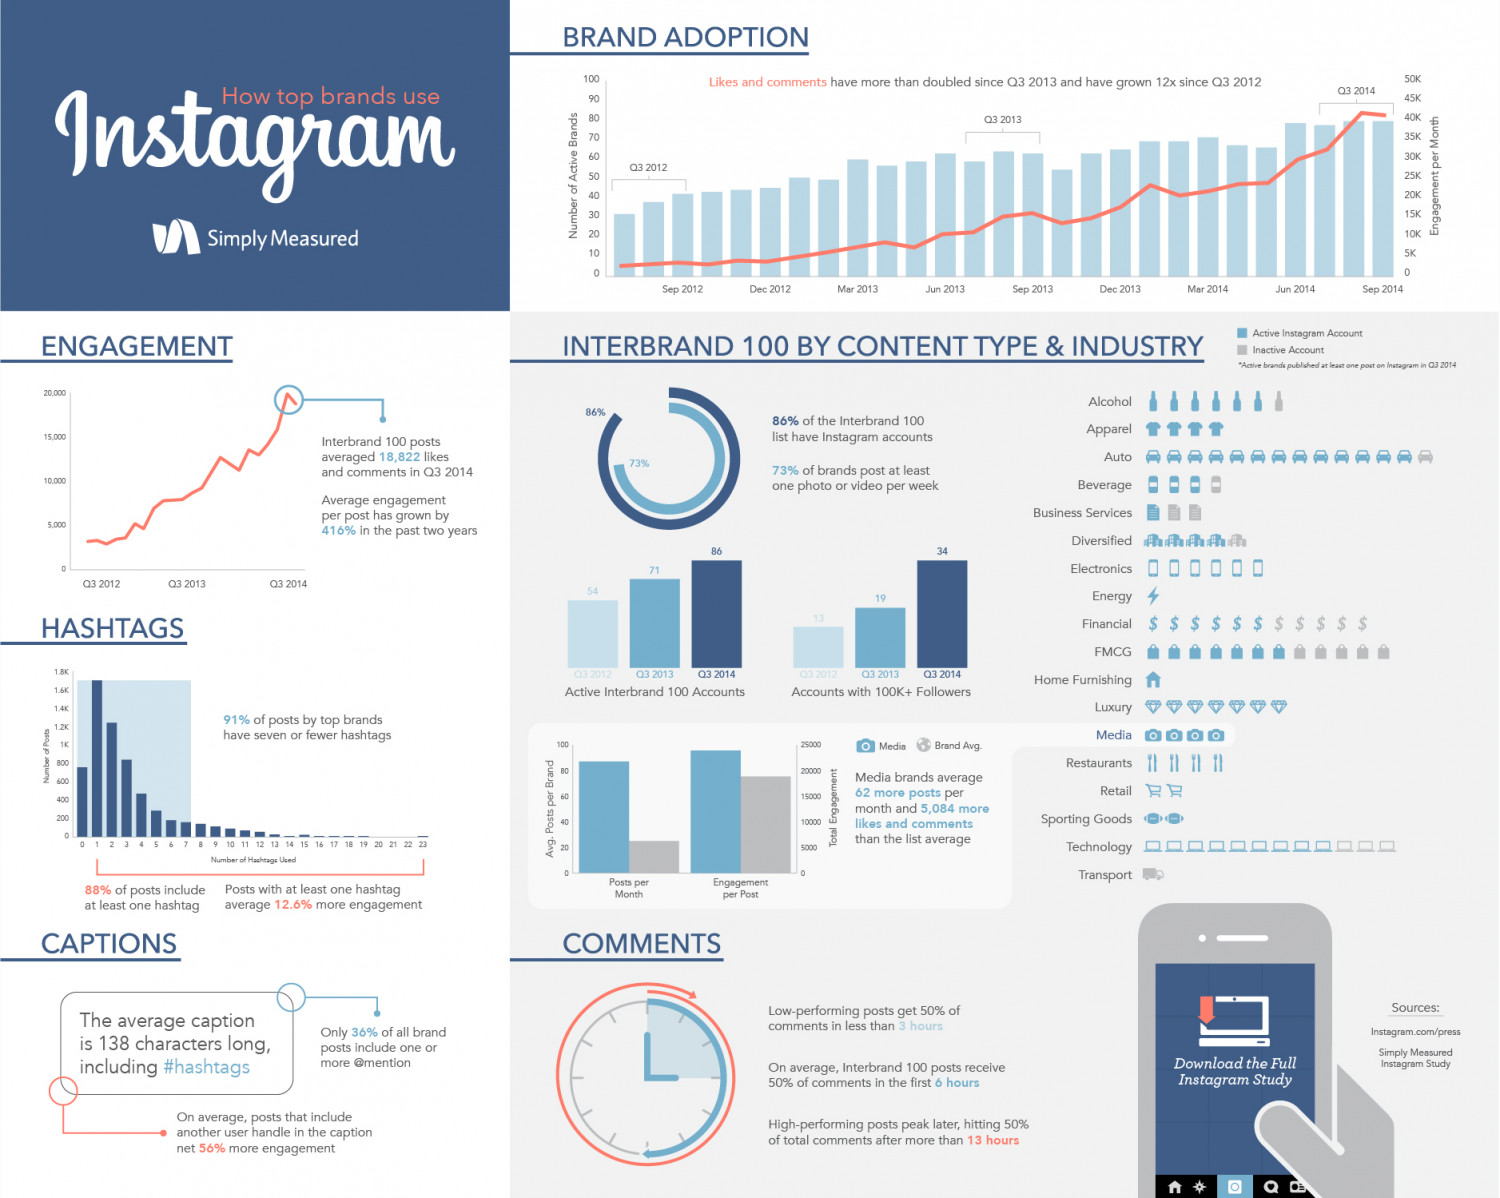 How Top Brands Use Instagram Infographic